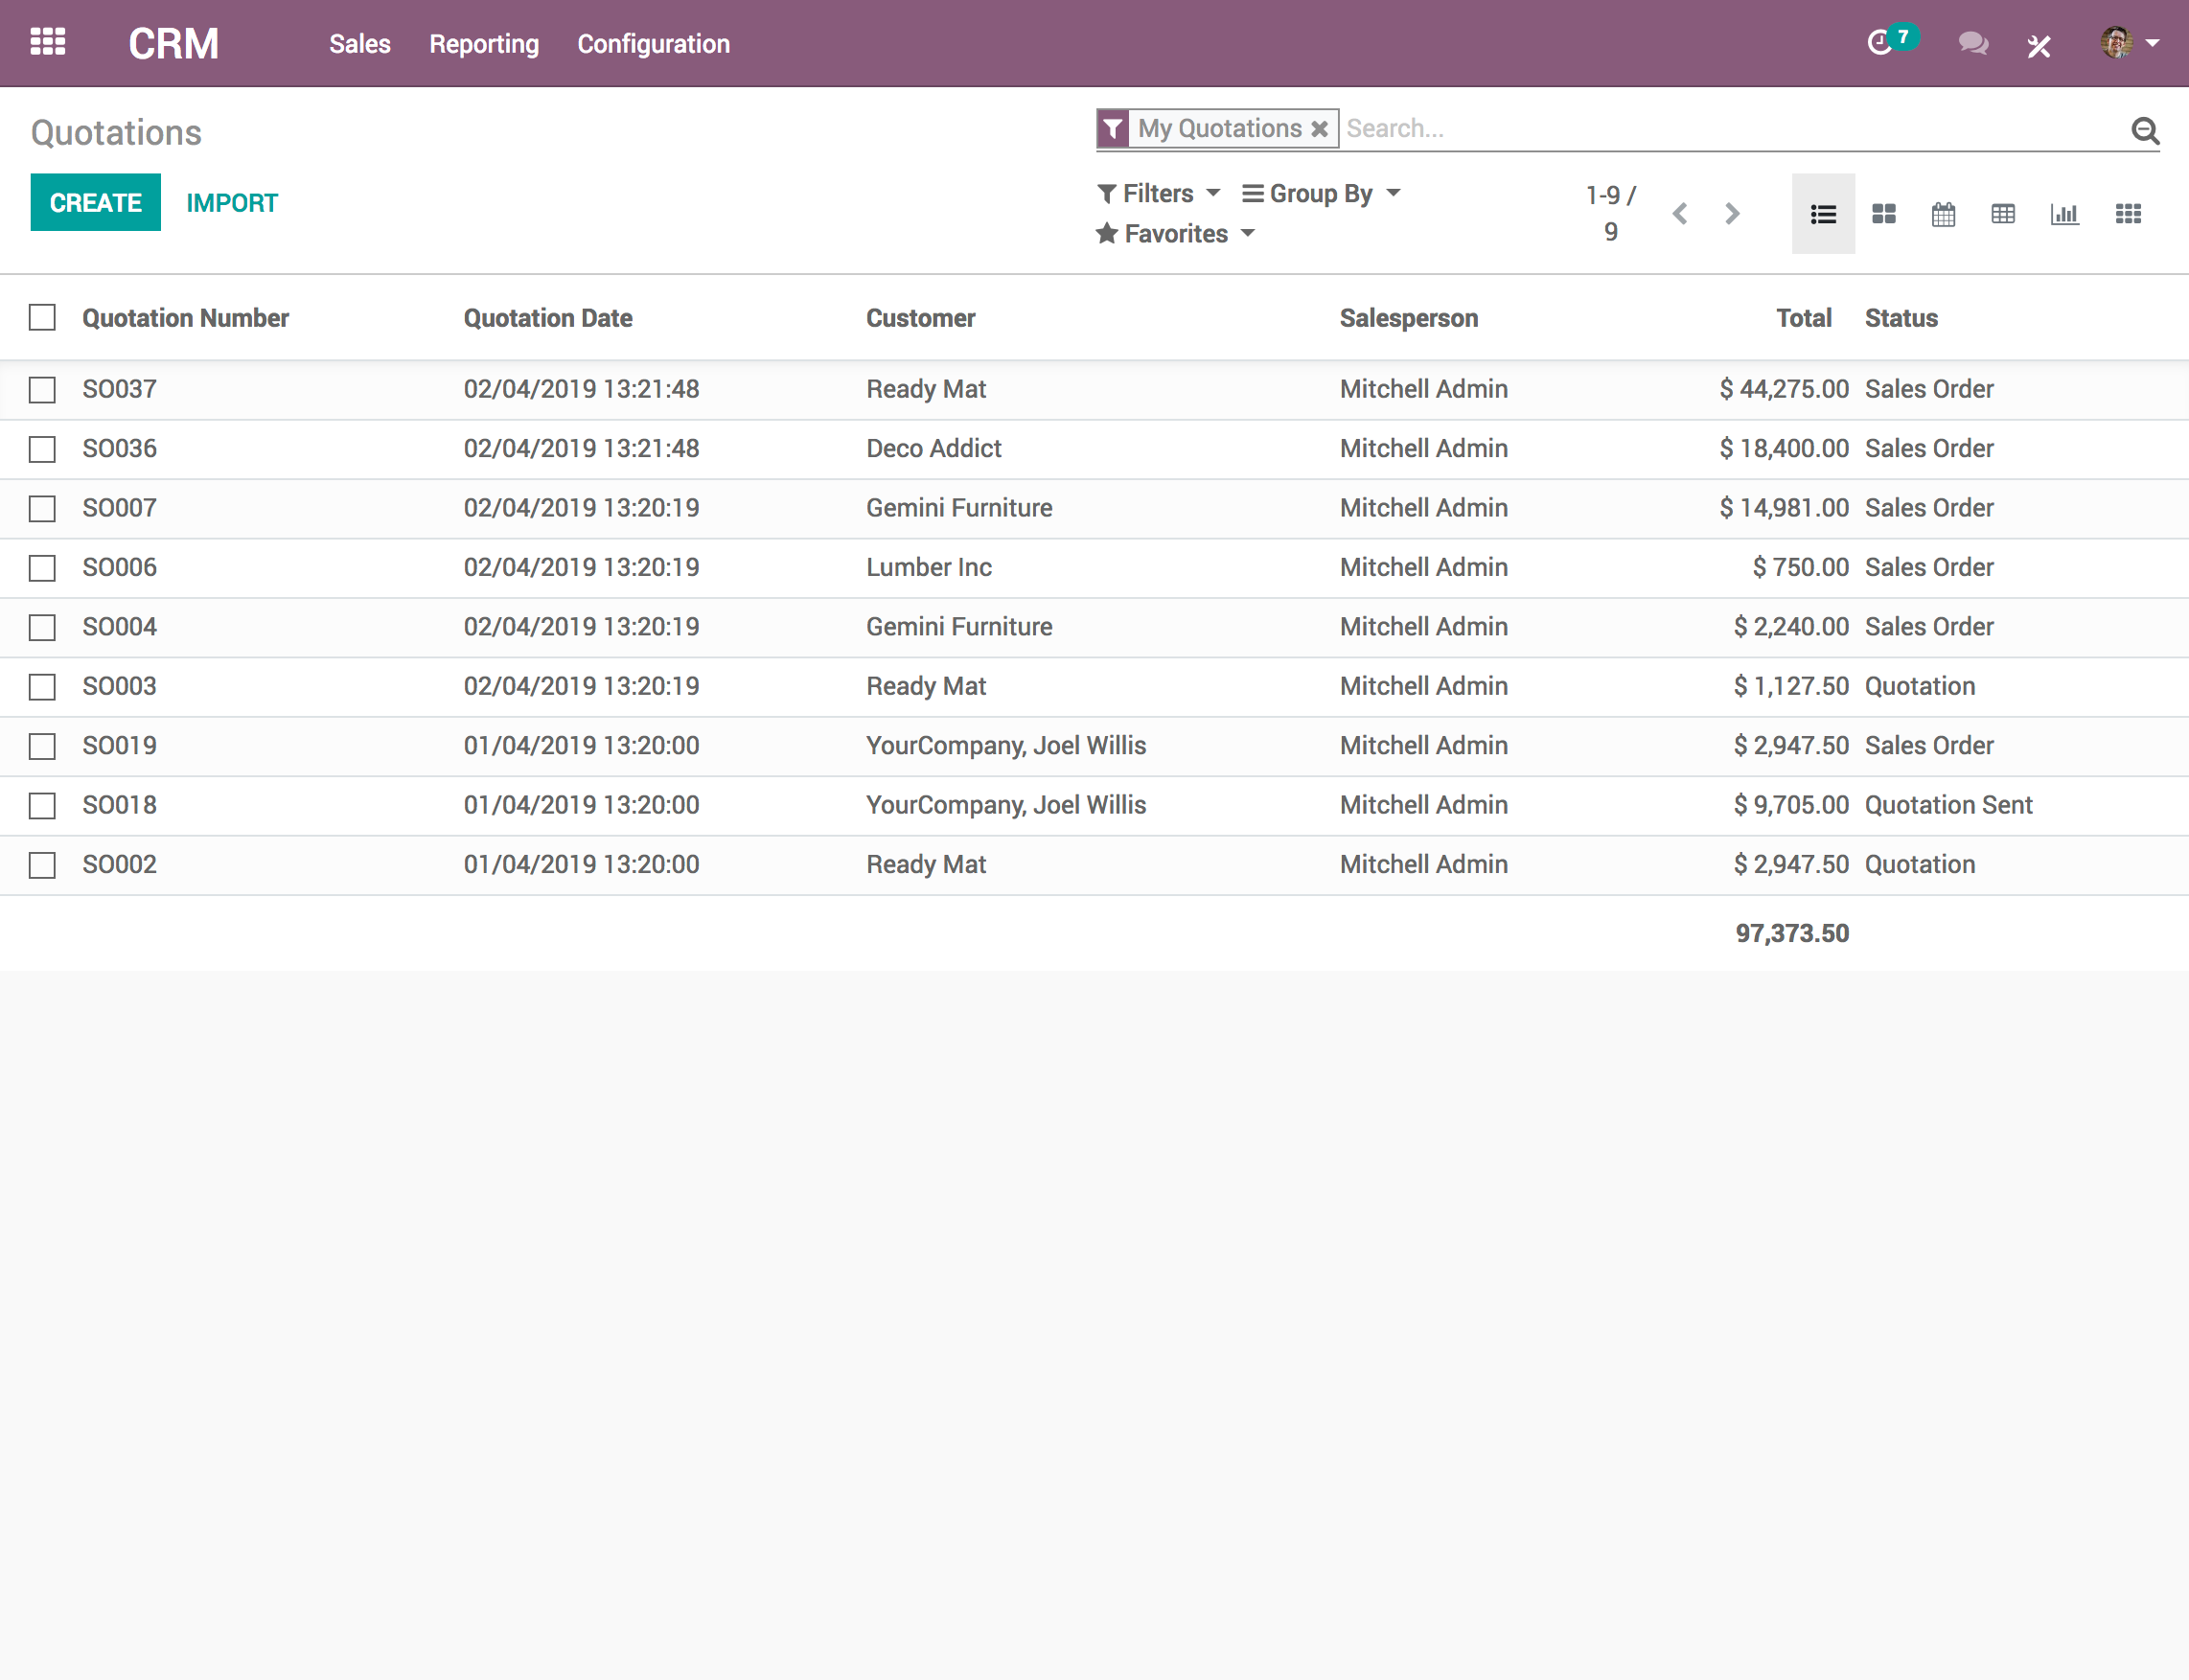 Odoo CRM - Quotations